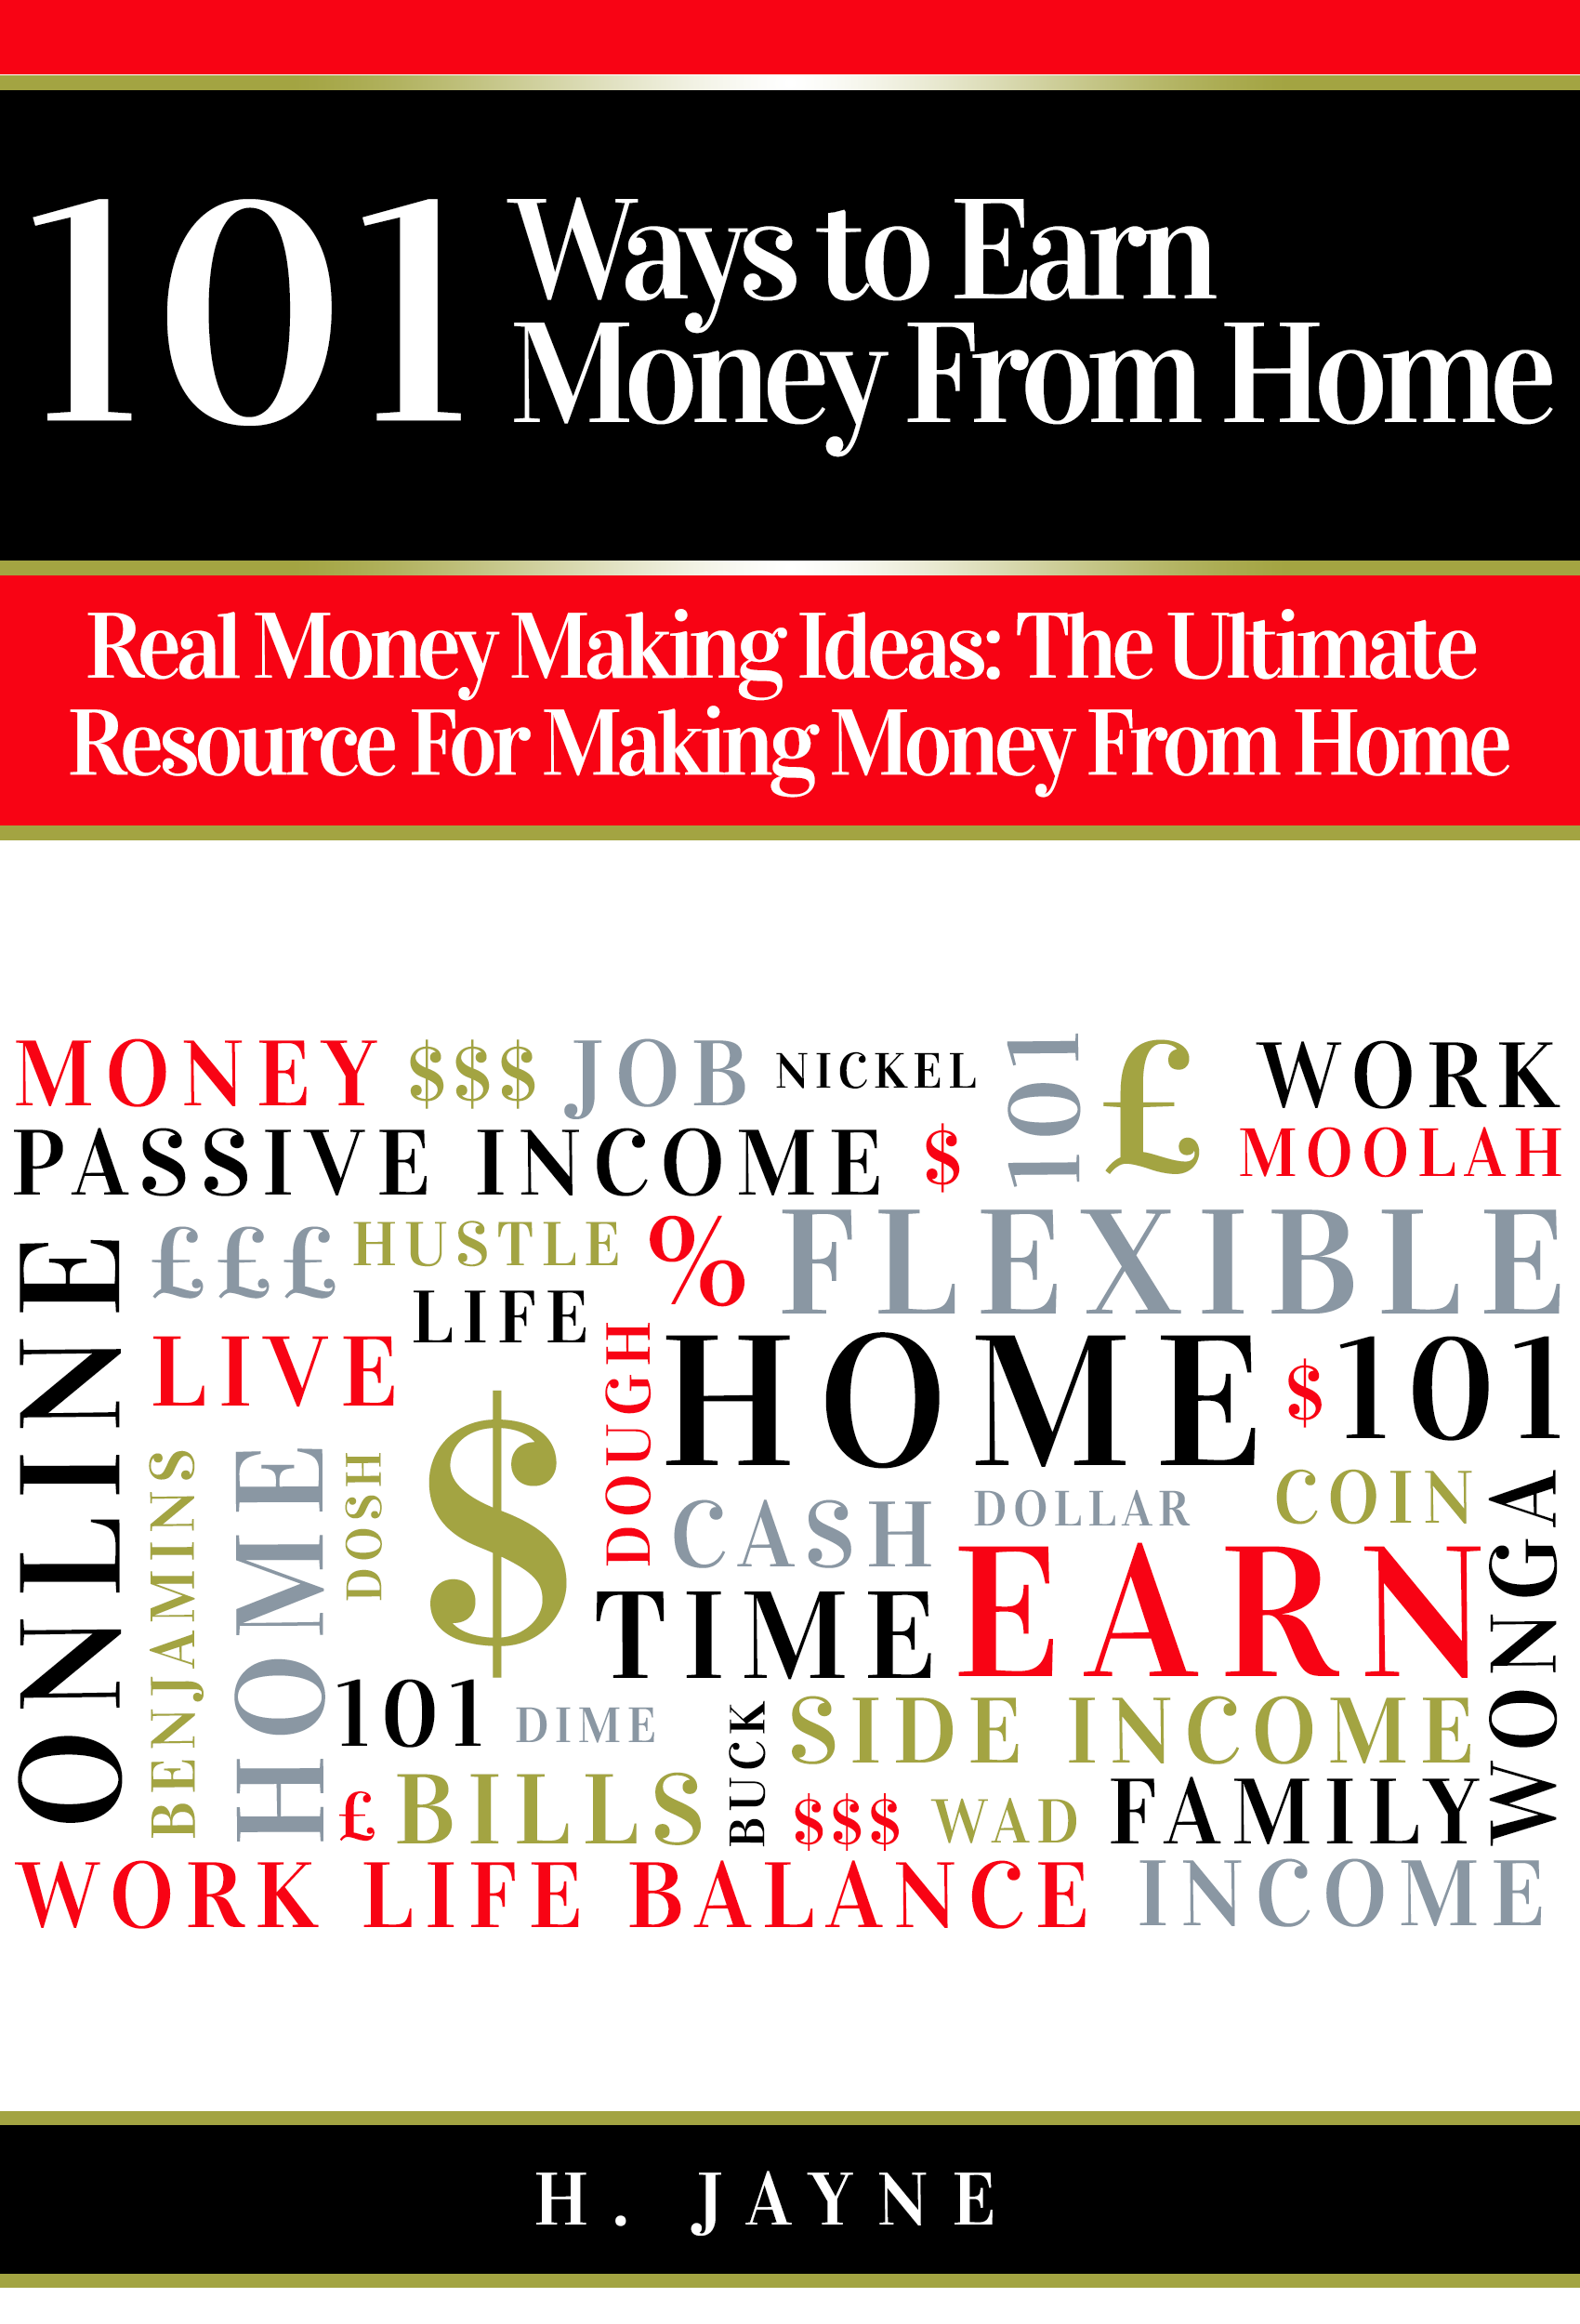 101 Ways to Earn Money From Home - New eBook Launch! | Earn money